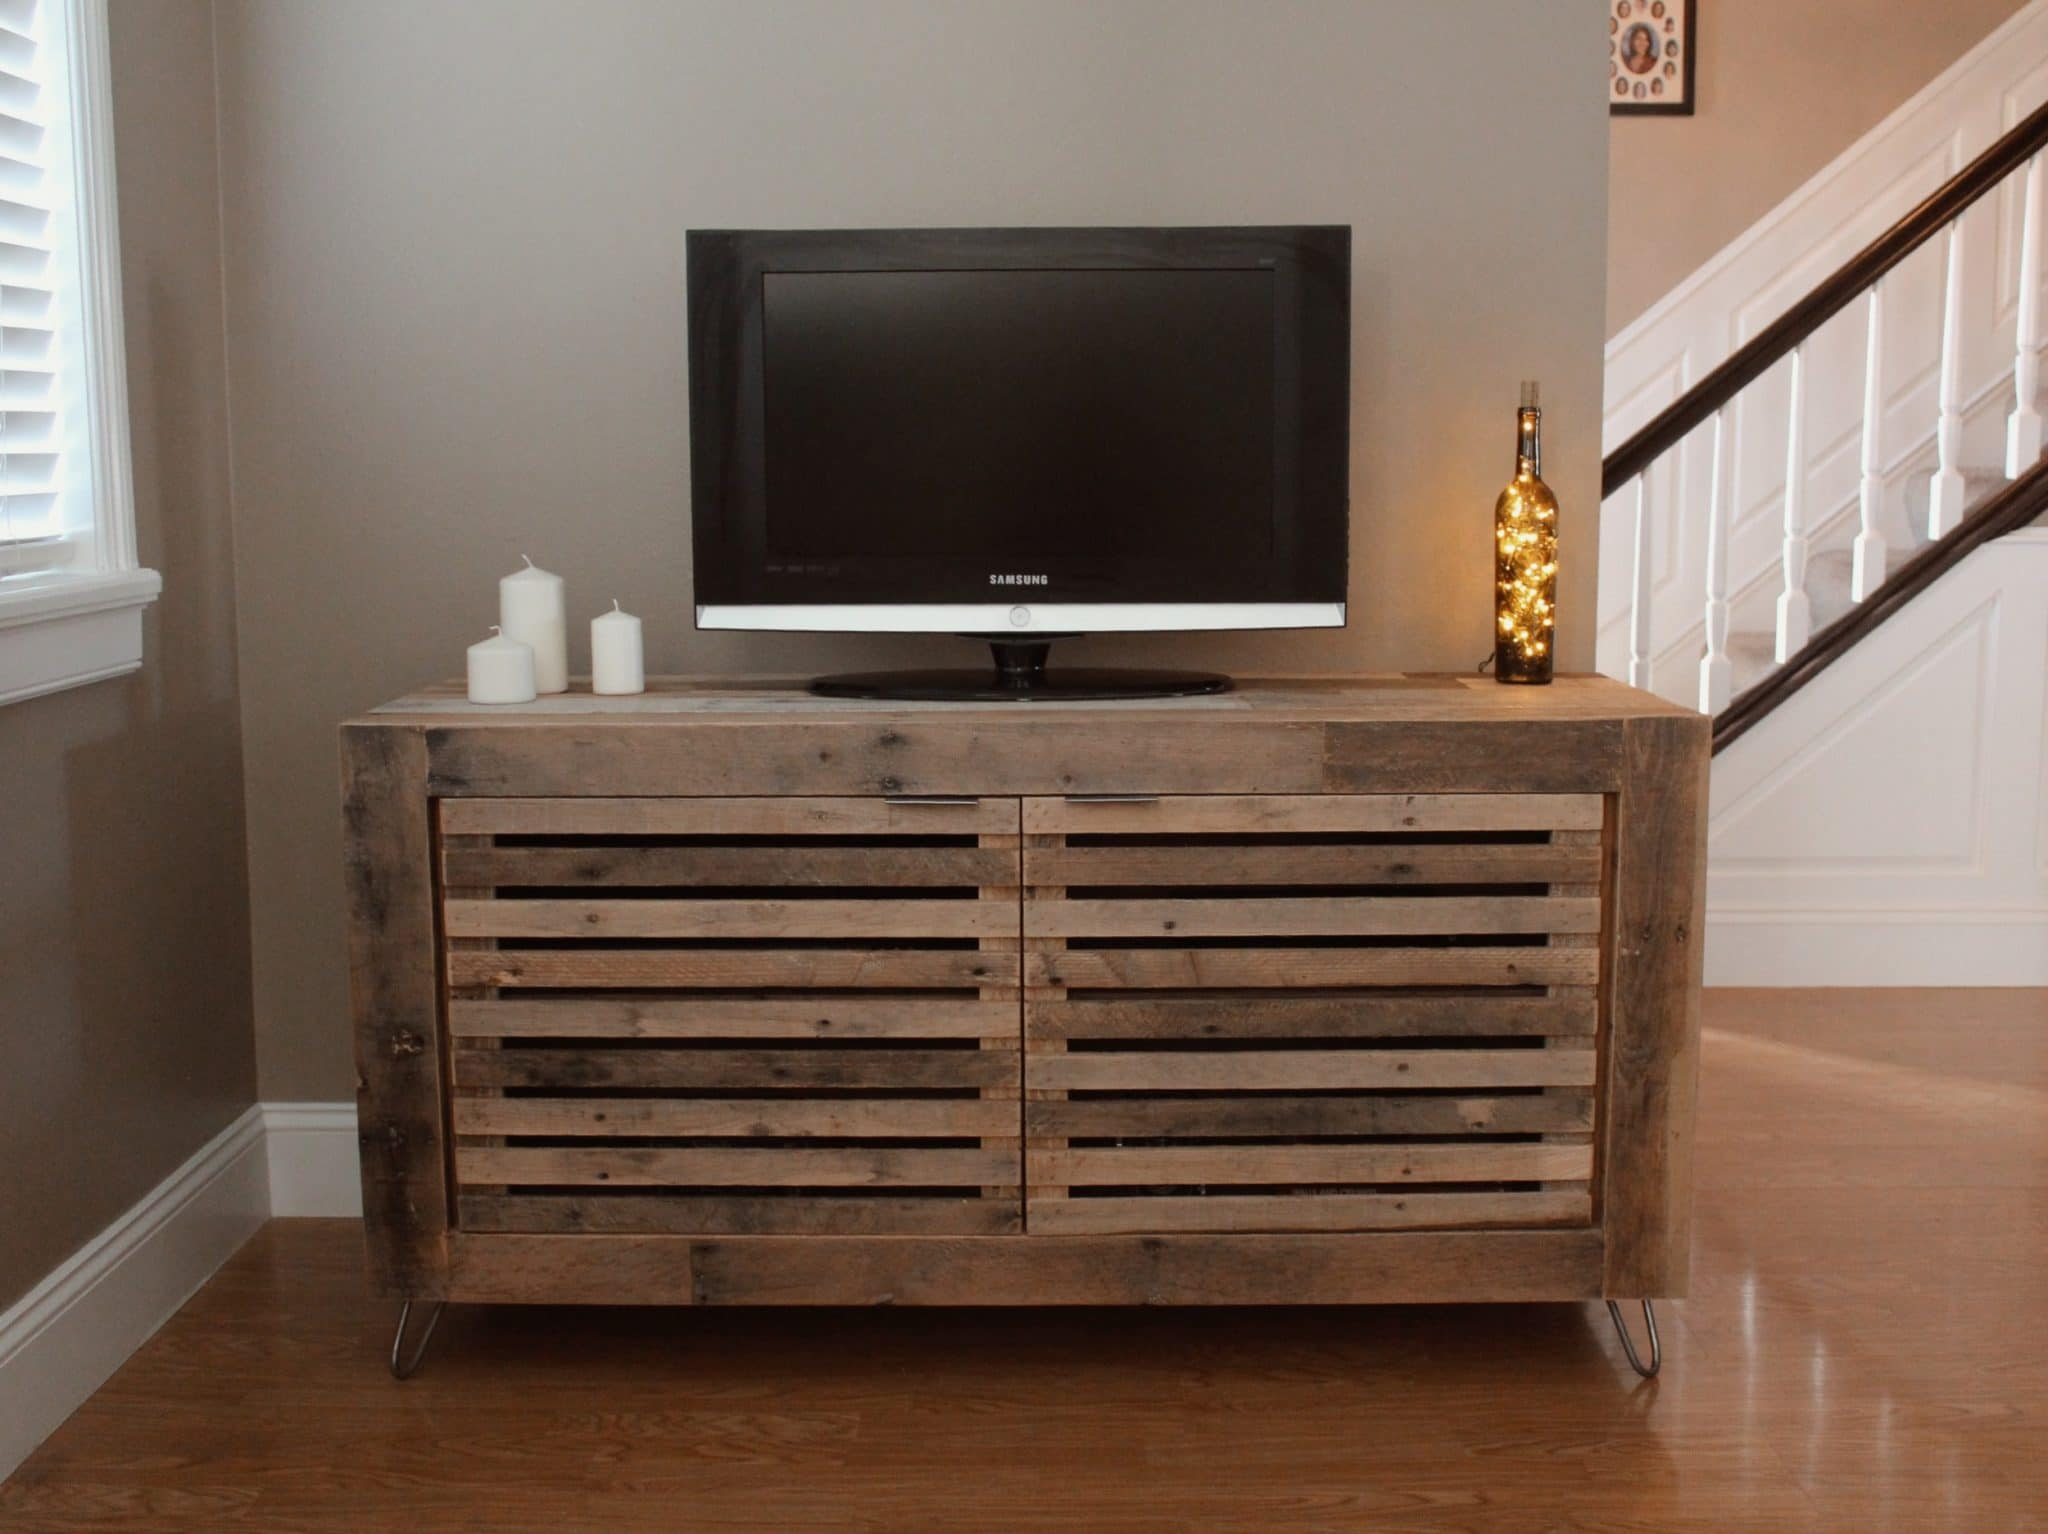 Reclaimed wood media console by Timber and Soul